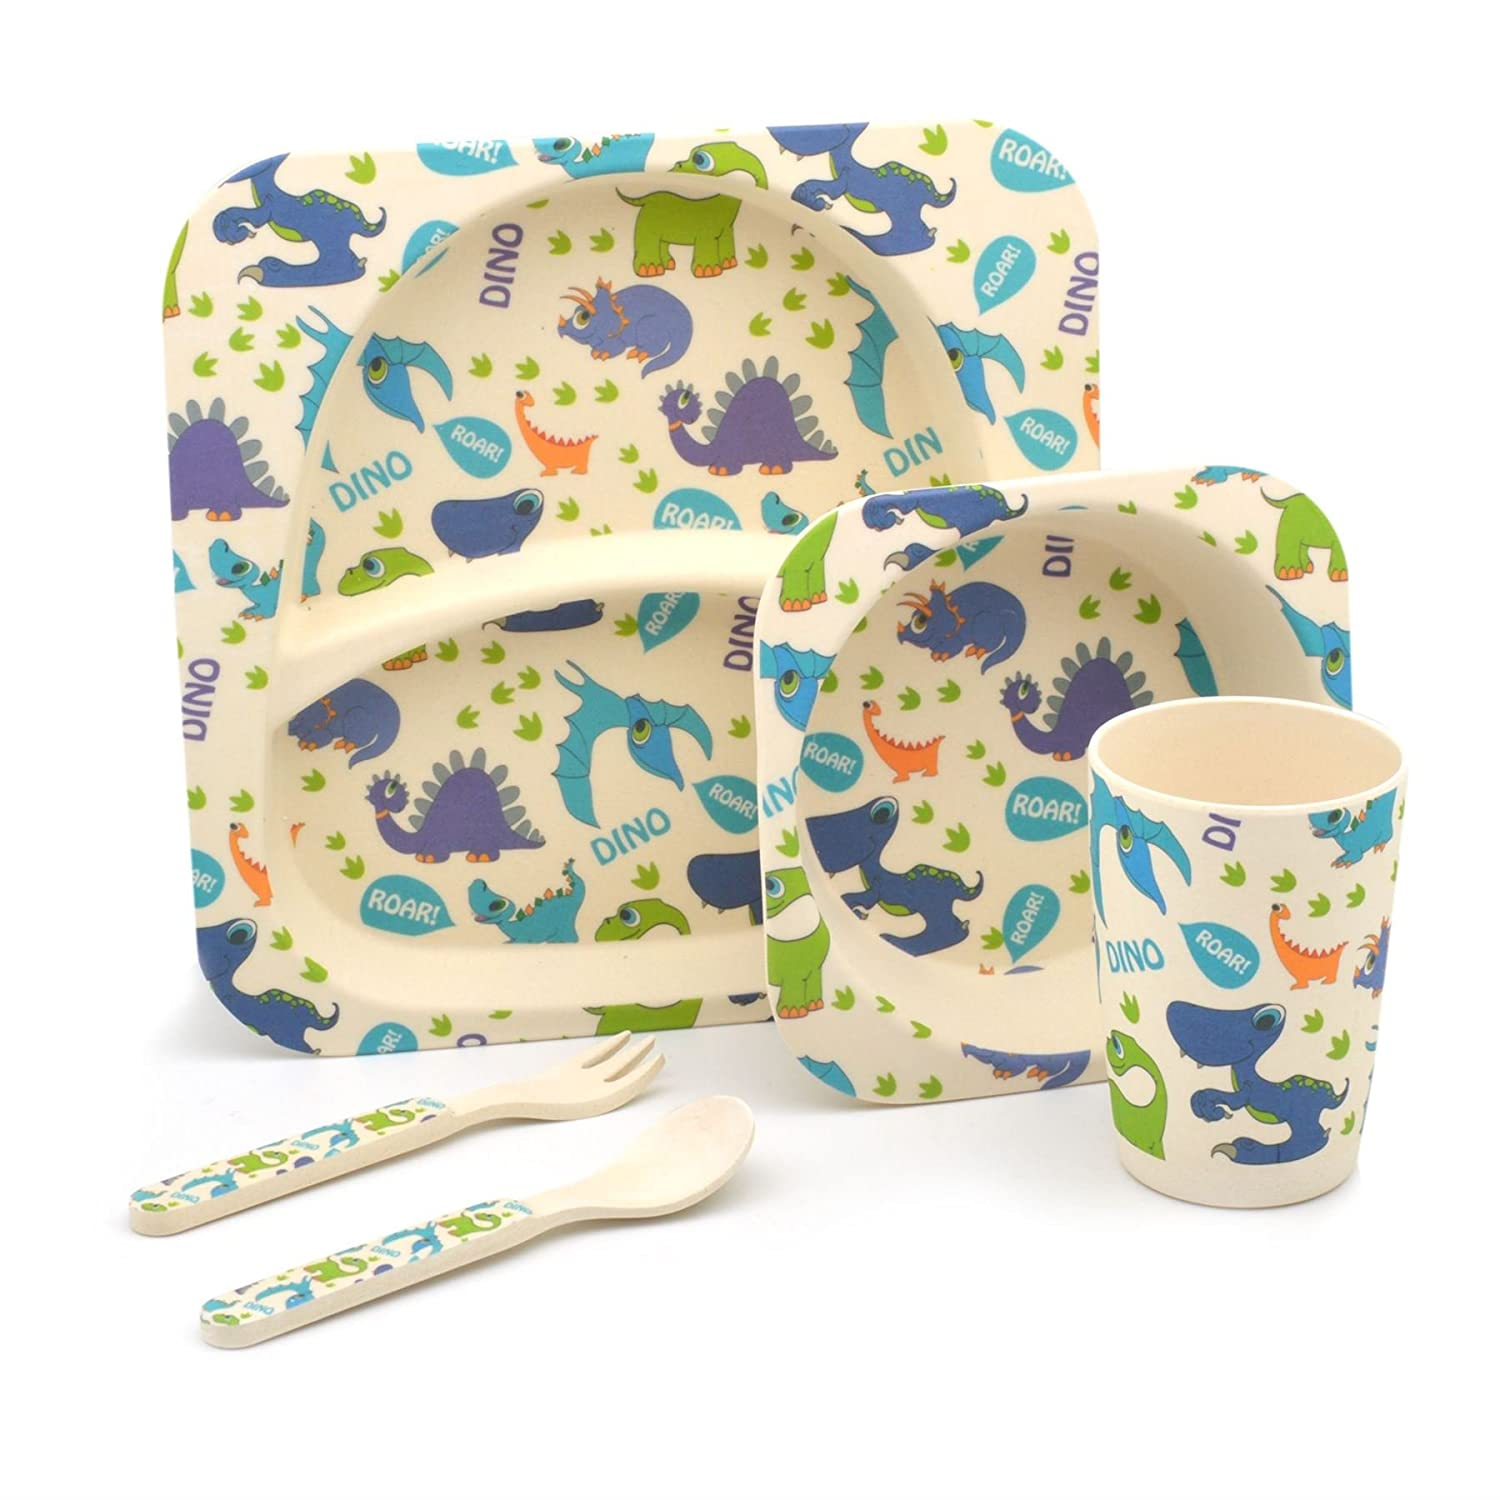 Childrens Bamboo Dinner Meal Set. Plate, Bowl, Cup, Knife & Fork Dinosaurs   B072LXGCD2